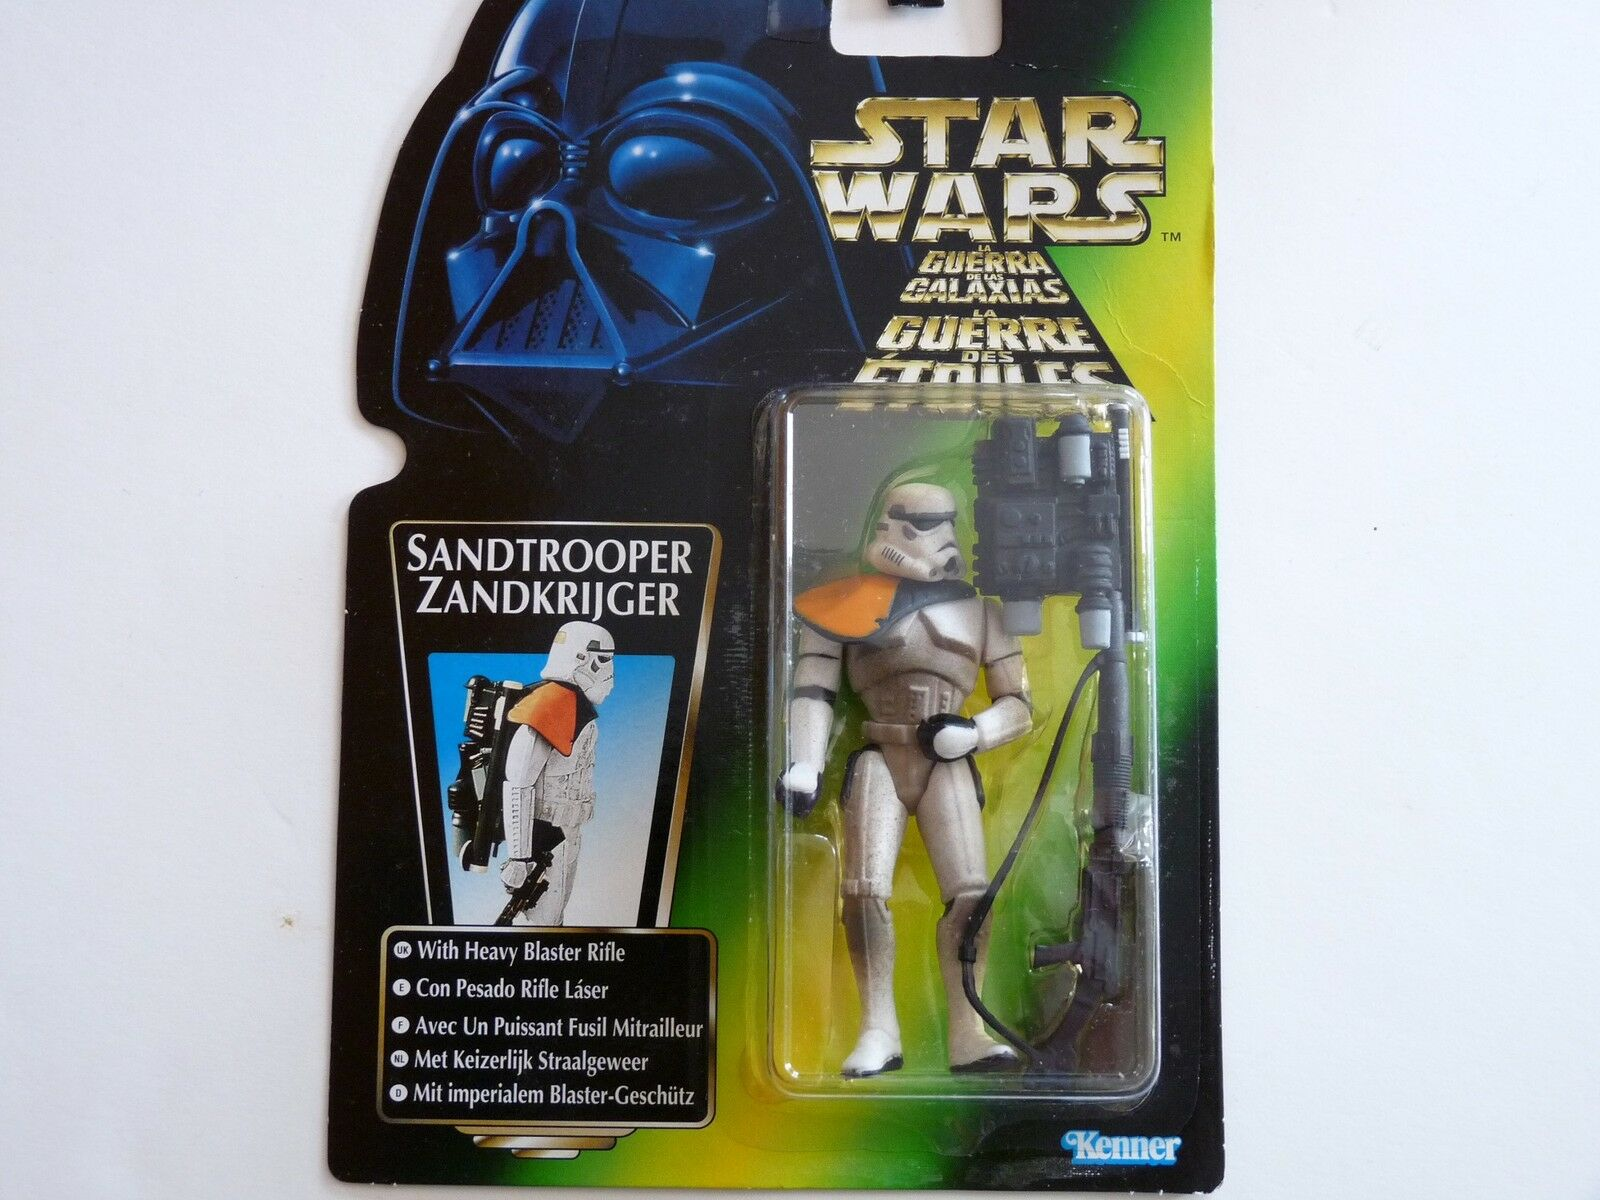 Figurine StarWars : STAR WARS SANDTROOPER POTF KENNER 1996 FIGURINE FIGURE